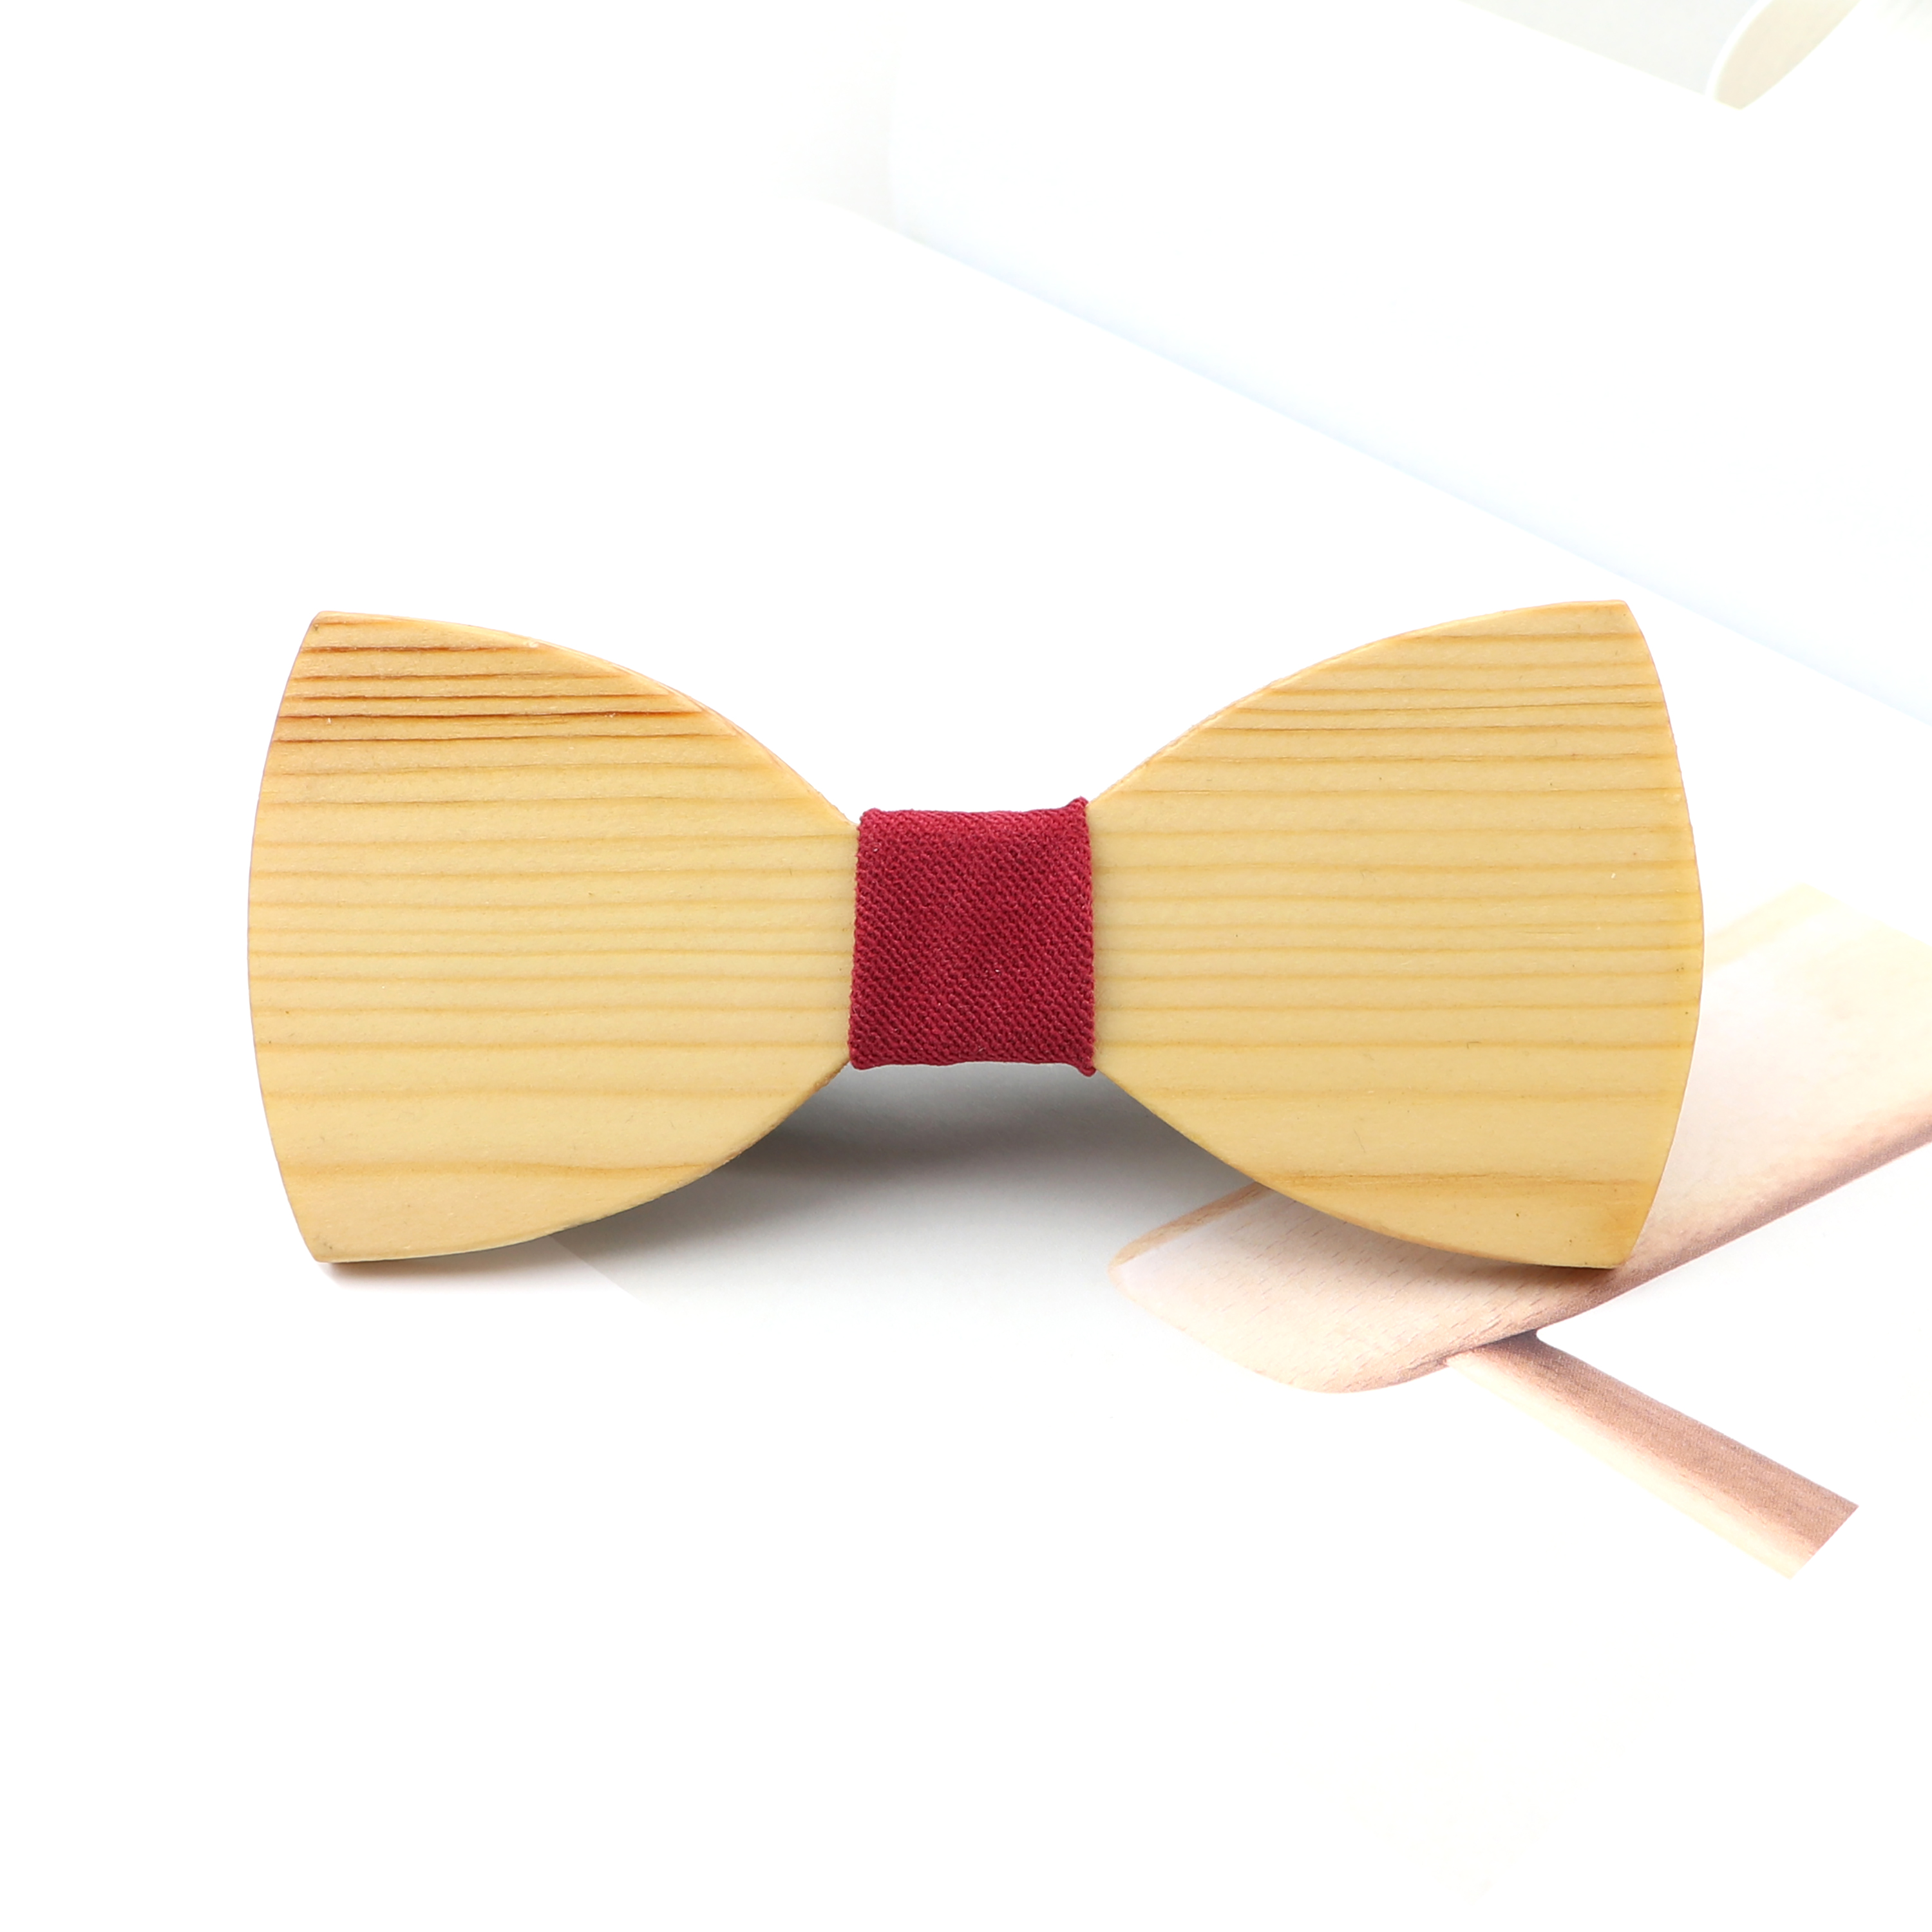 New Solid Wooden Bow Ties For Men Bowtie Classic Daily Party Butterfly Wedding Suit Shirt Bowknots Tie Gift Stylish Accessory